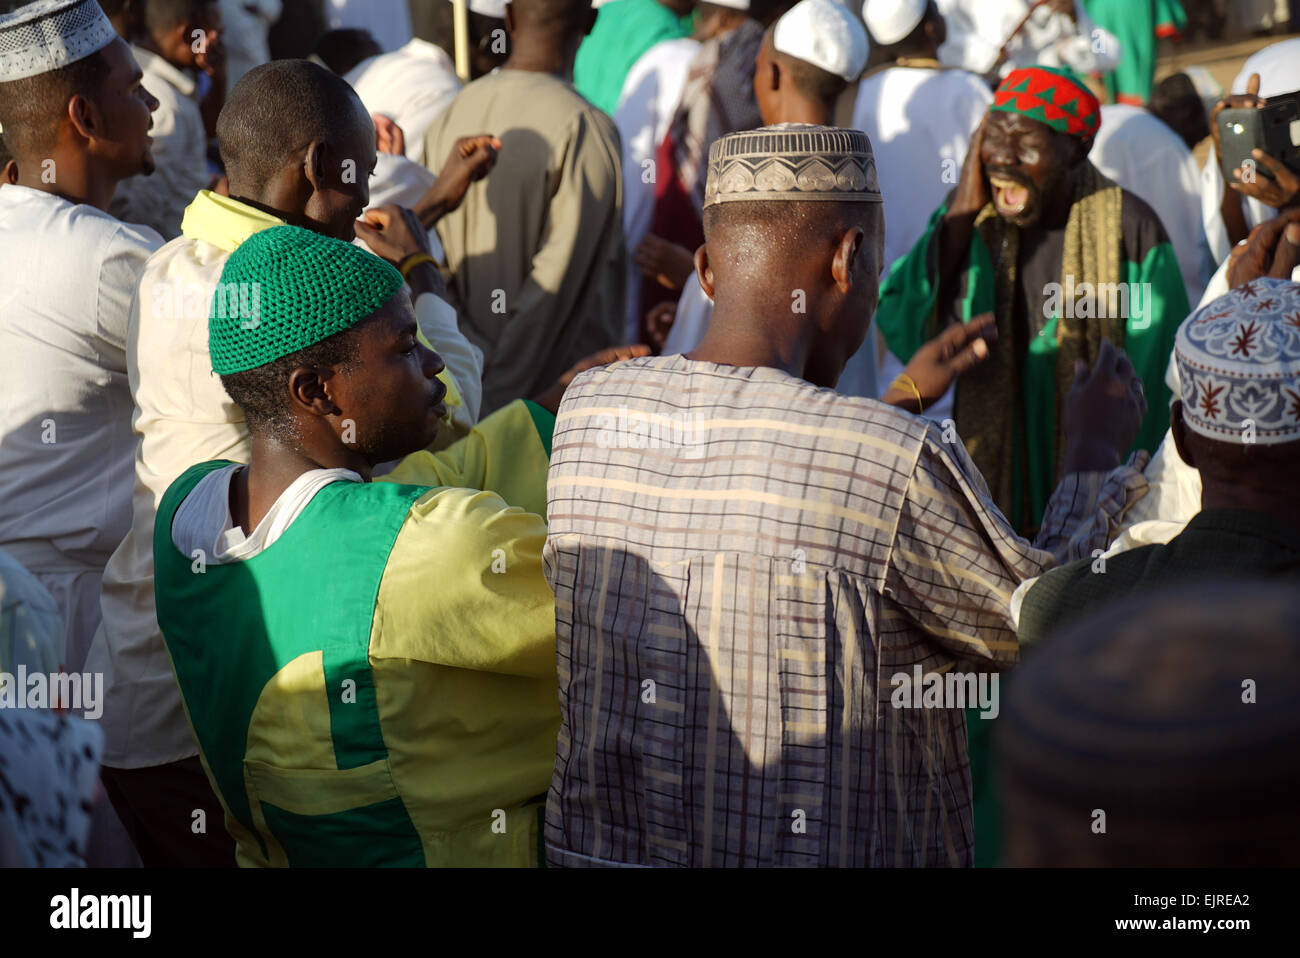 Sufis in Omdurman, near the capital city of Khartoum in Sudan - Stock Image